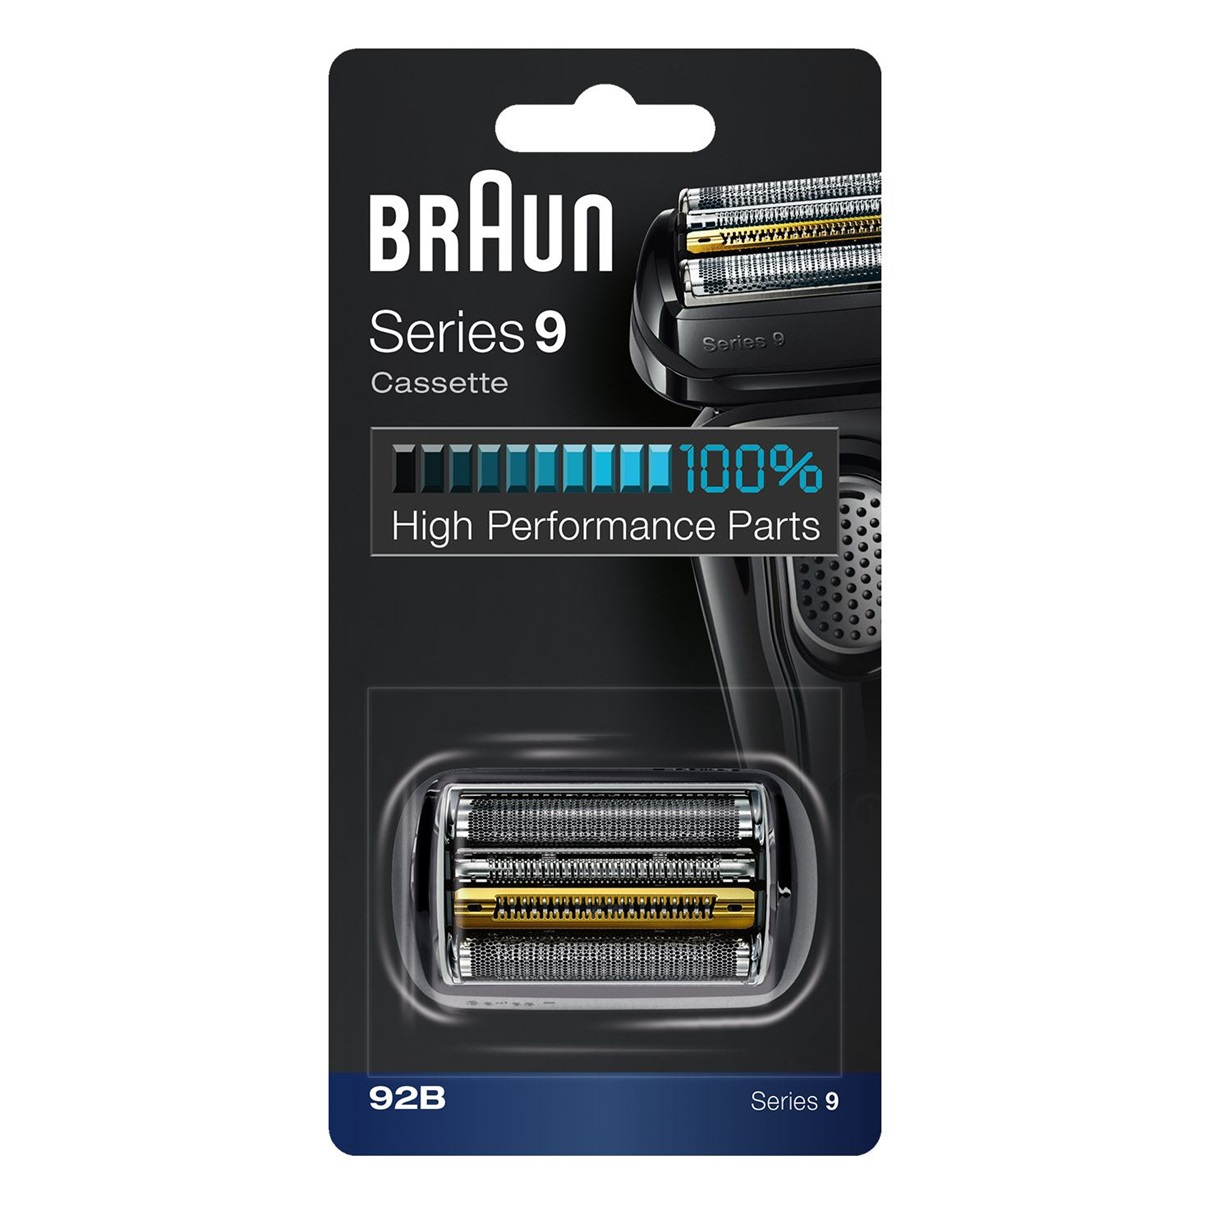 Braun Series 9 Combi 92B Cassette Replacement pack